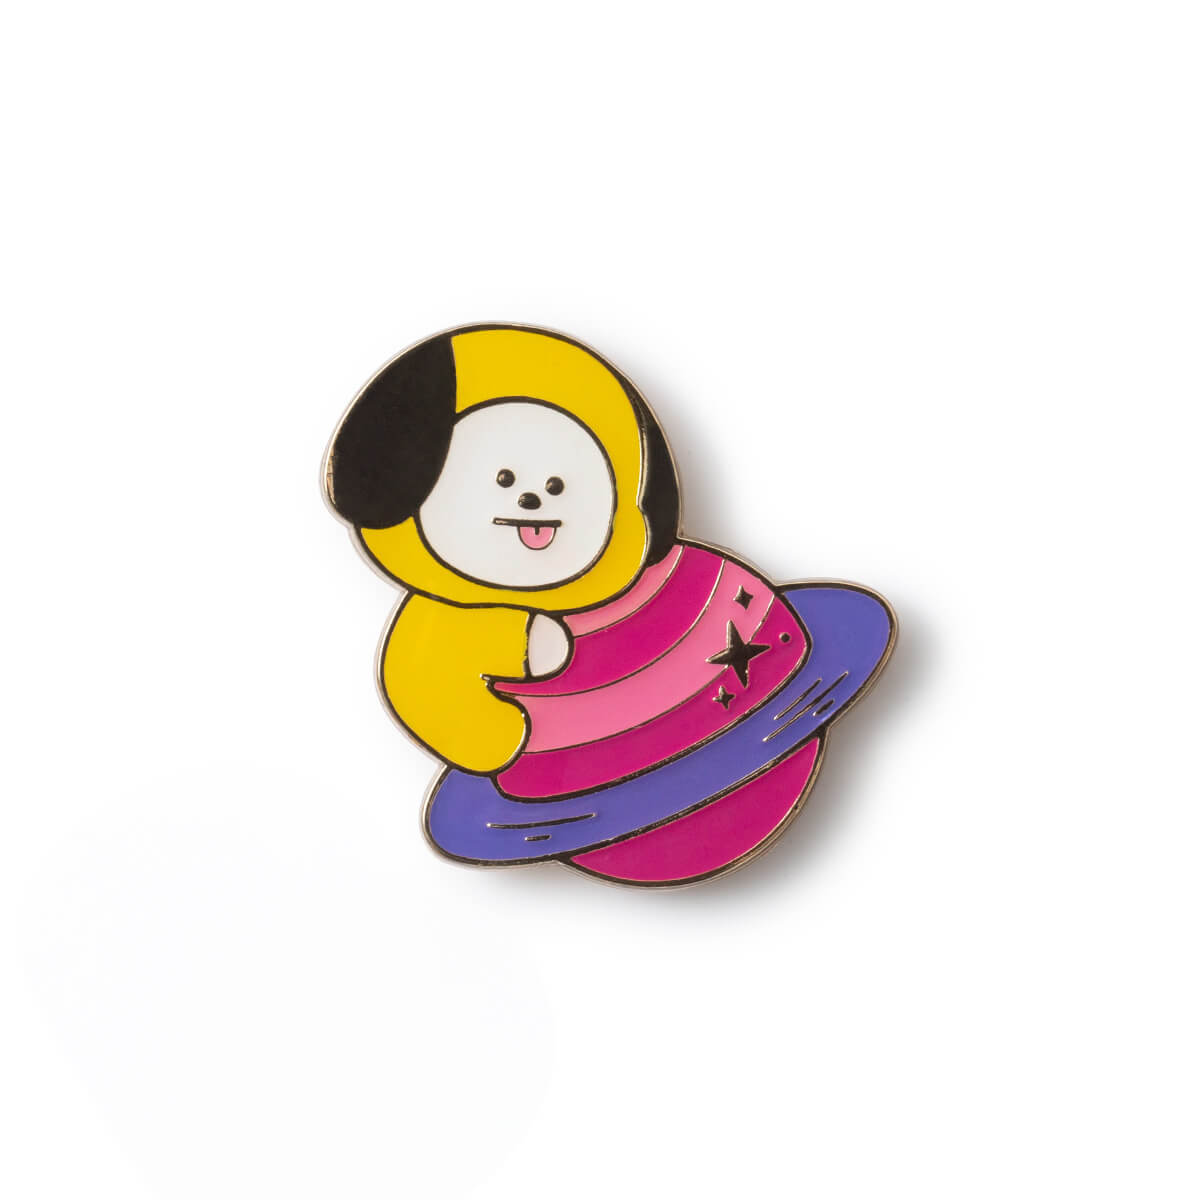 BT21 CHIMMY 20 Space Wappen Metal Badge 2 Piece Set